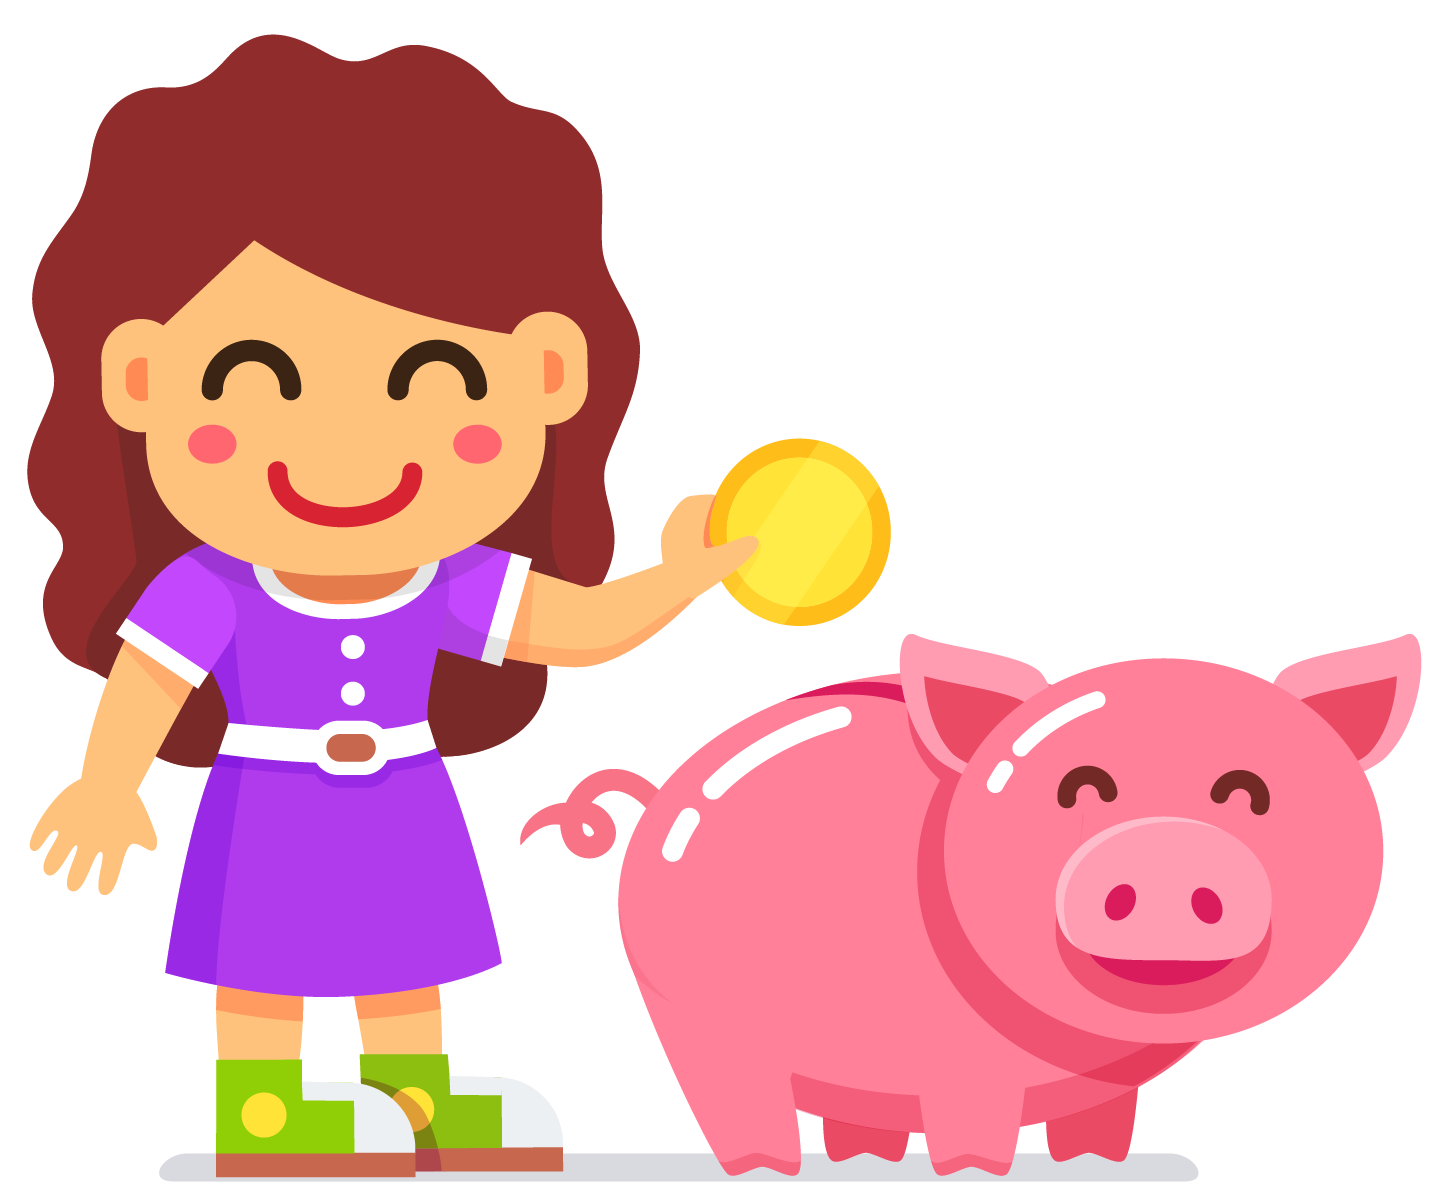 Example for a linear equation: A girl's piggy bank has a sum of Rs. 77 and has 3 times as many two-rupee coins as five-rupee coins in it.